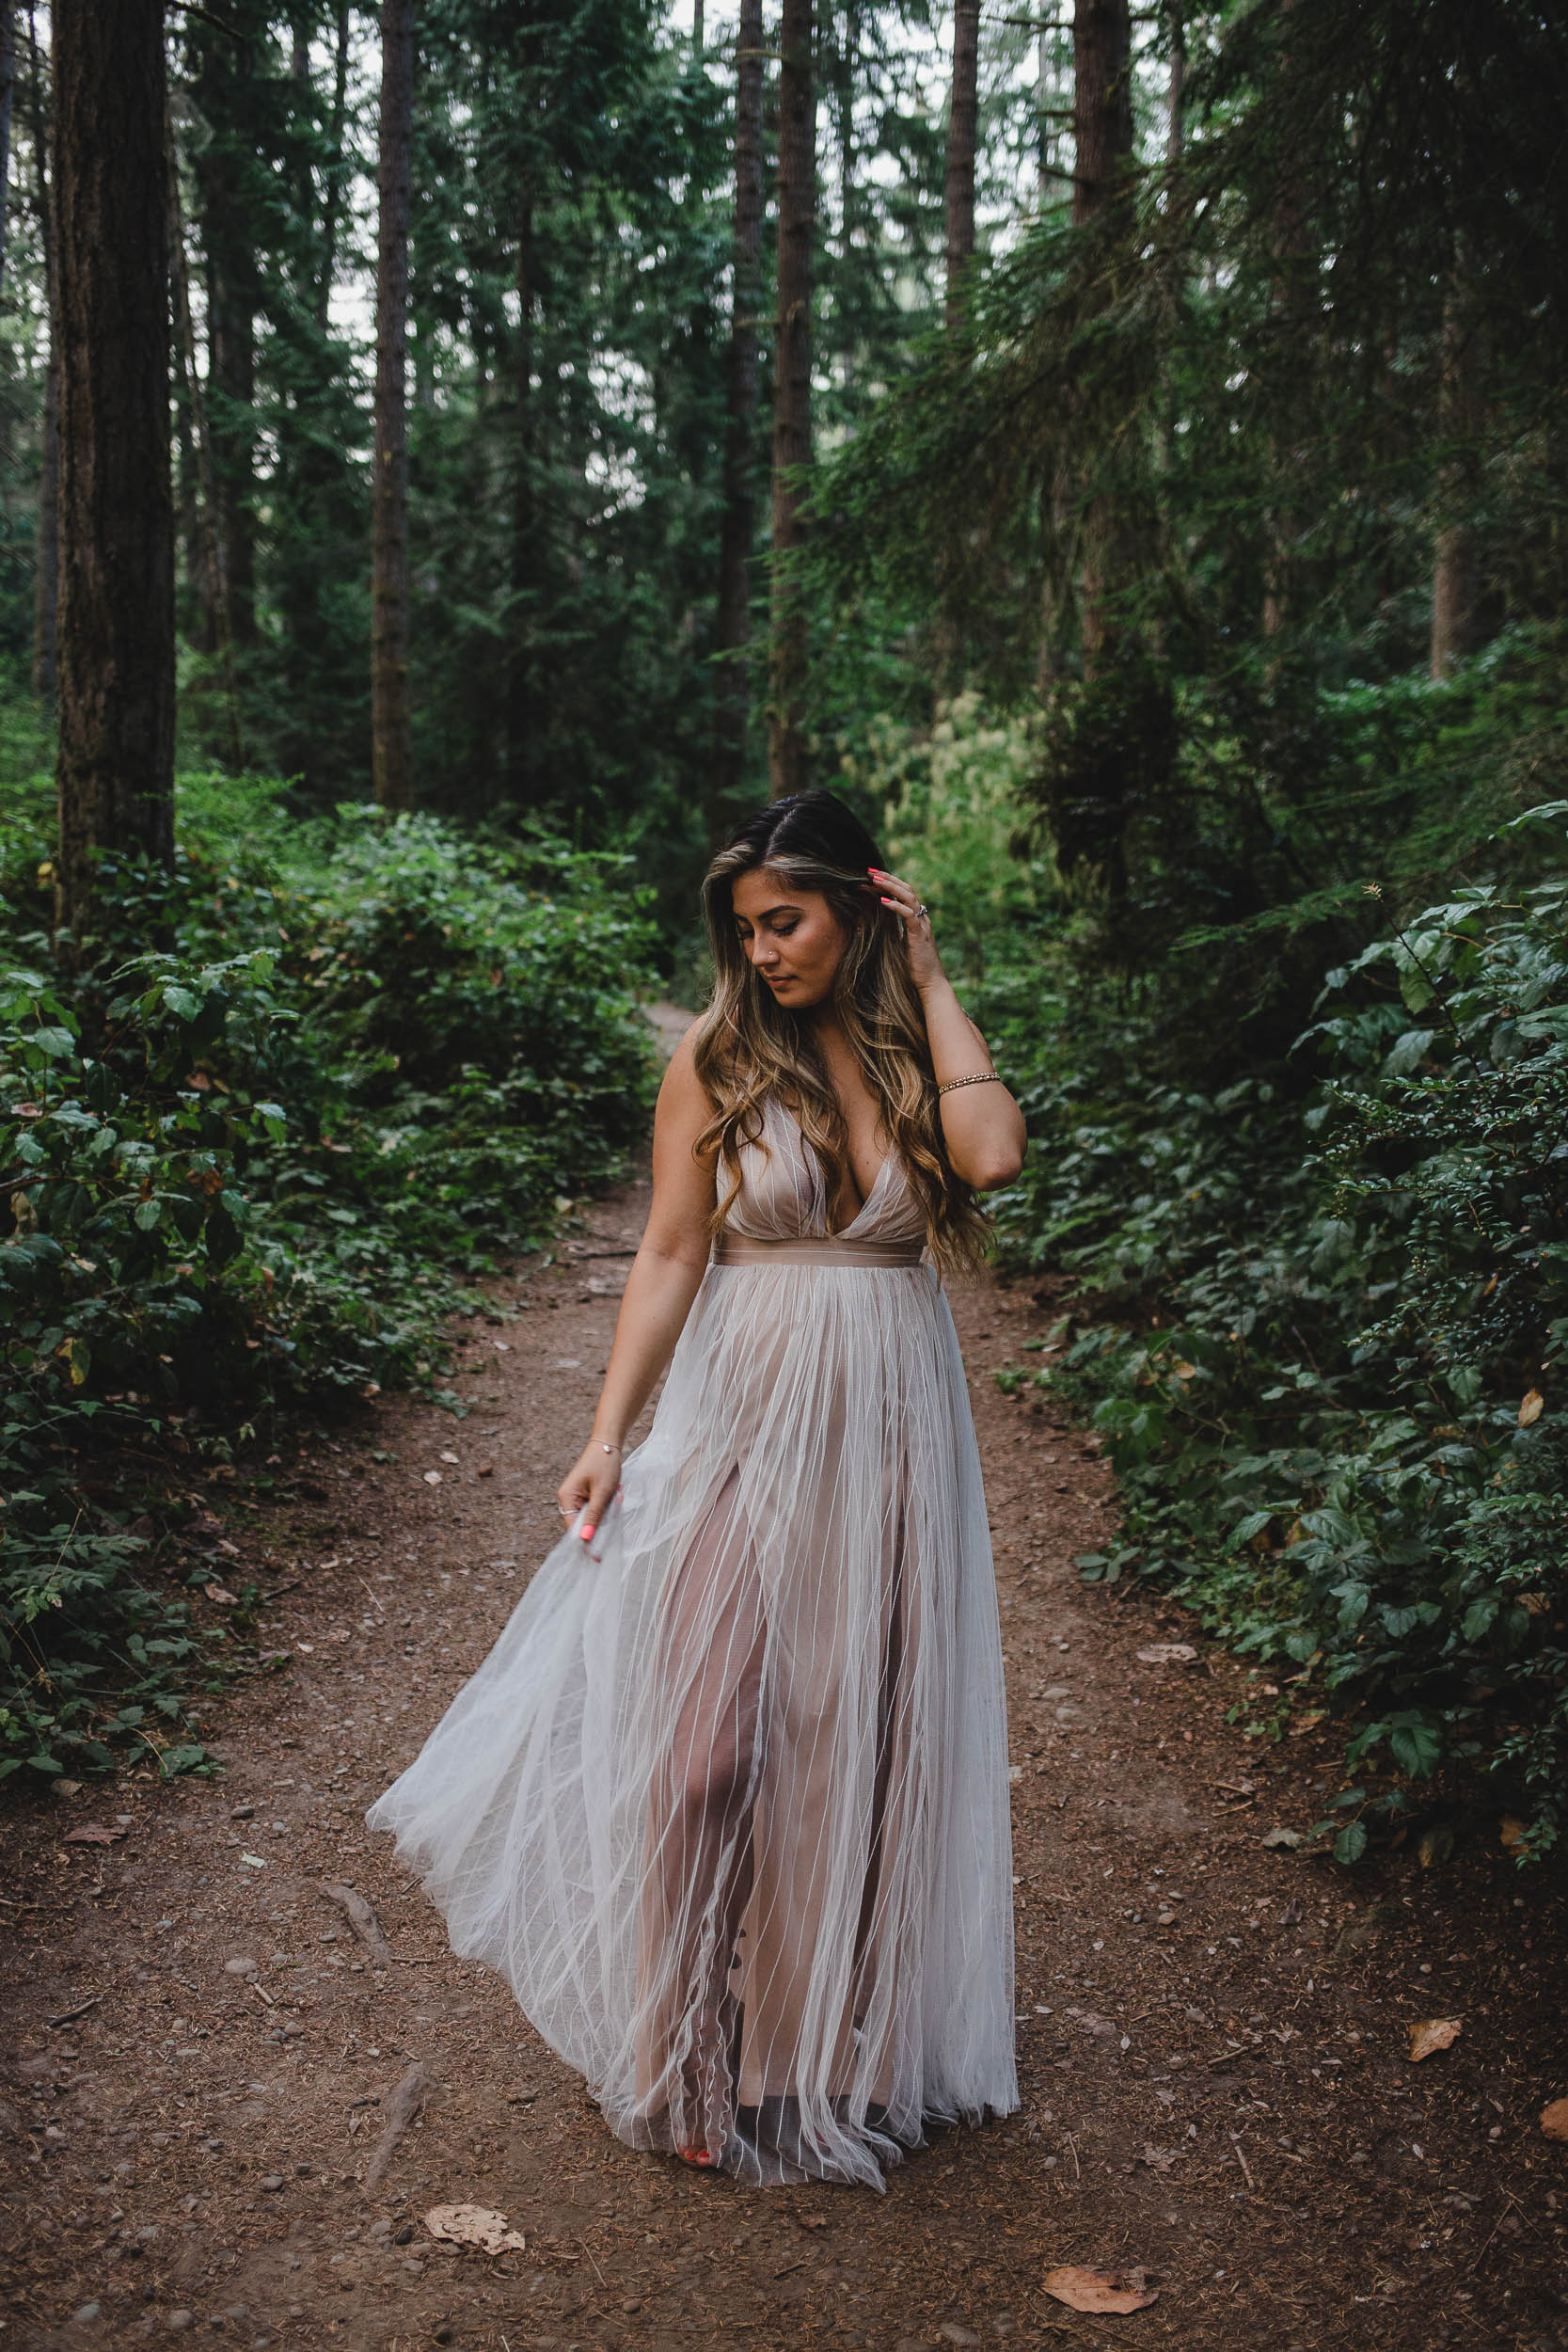 Bainbridge-Island-Elopement-KyleLovesTori-38.jpg